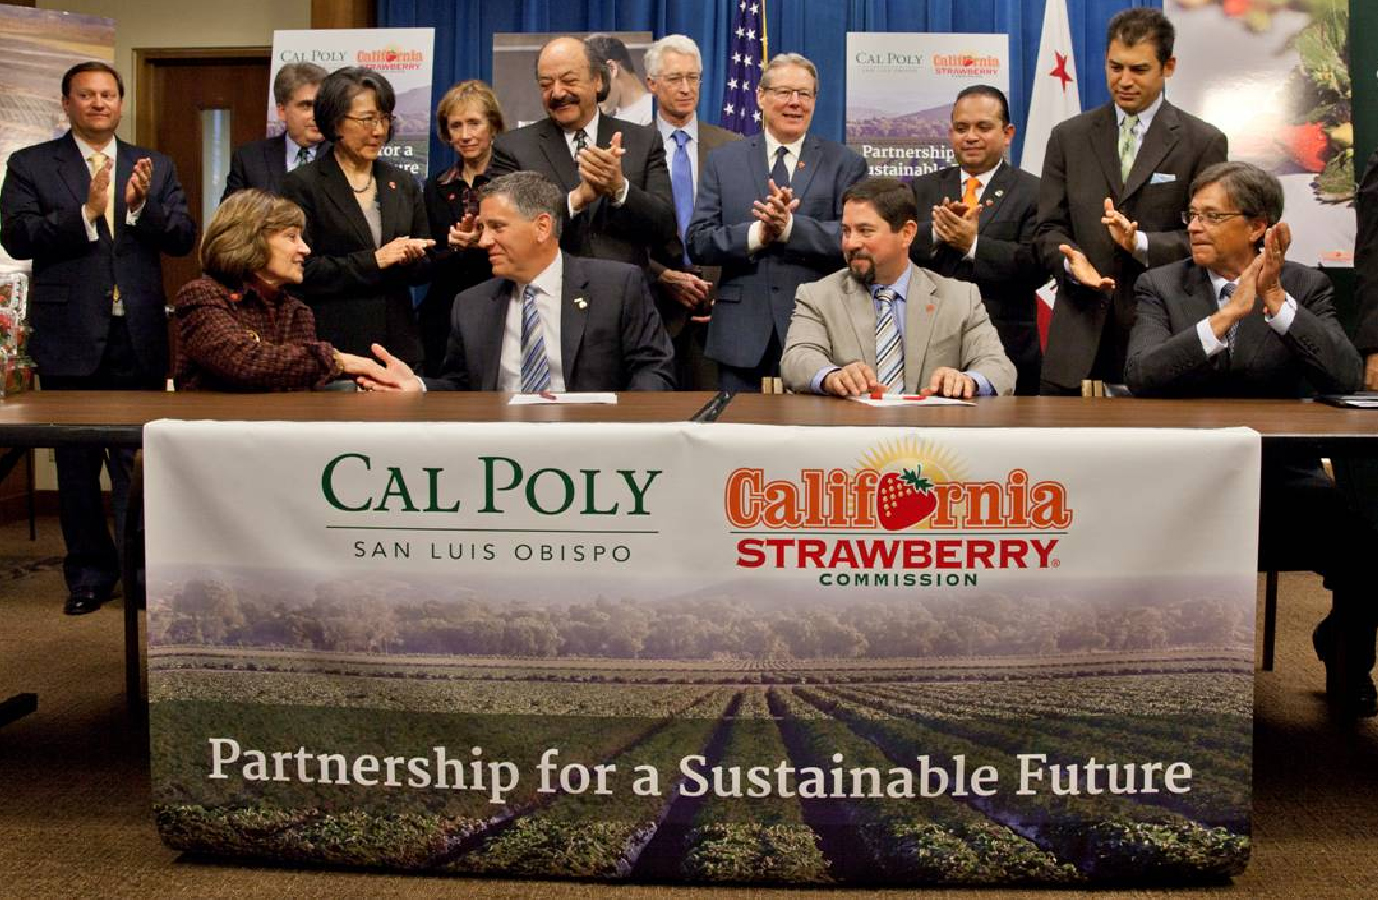 CDFA secretary Karen Ross, seated far left, congratulates Cal Poly, San Luis Obispo president Jeffrey Armstrong at the signing ofa partnership agreement with California Strawberry Commission president Victor Ramirez, seated second from right. Seated at the far right is is Cal-EPA secretary Matt Rodriquez.